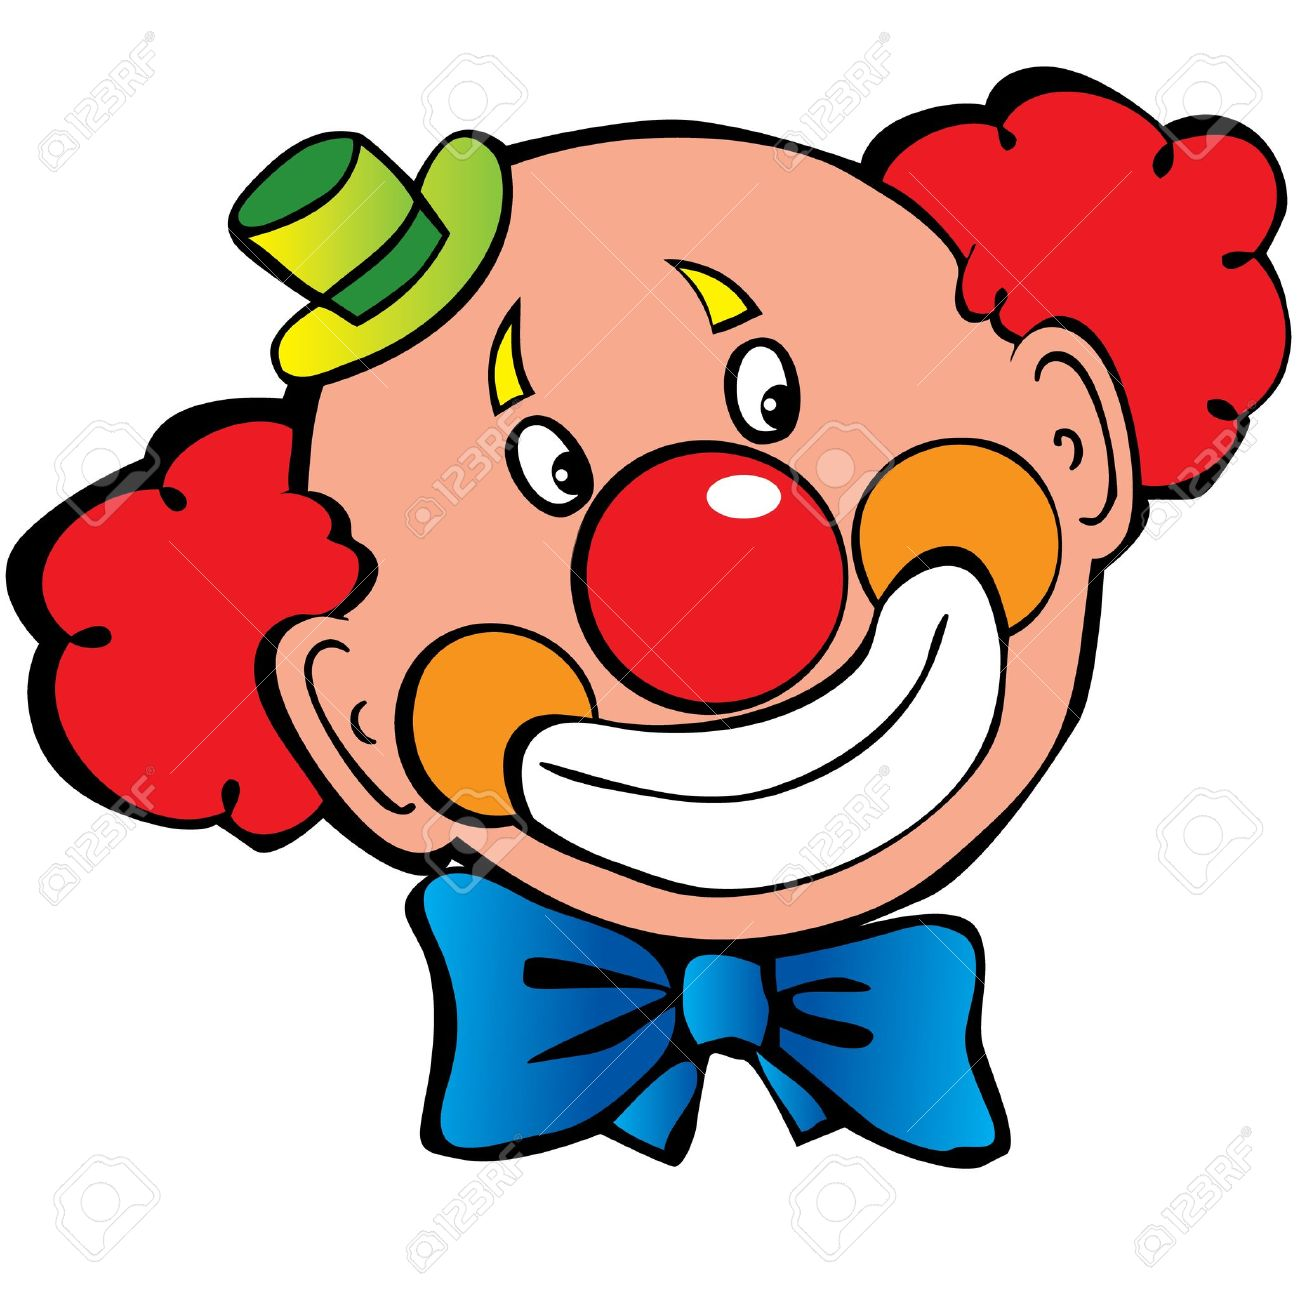 Happy clown art-illustration on a white background - 15067567